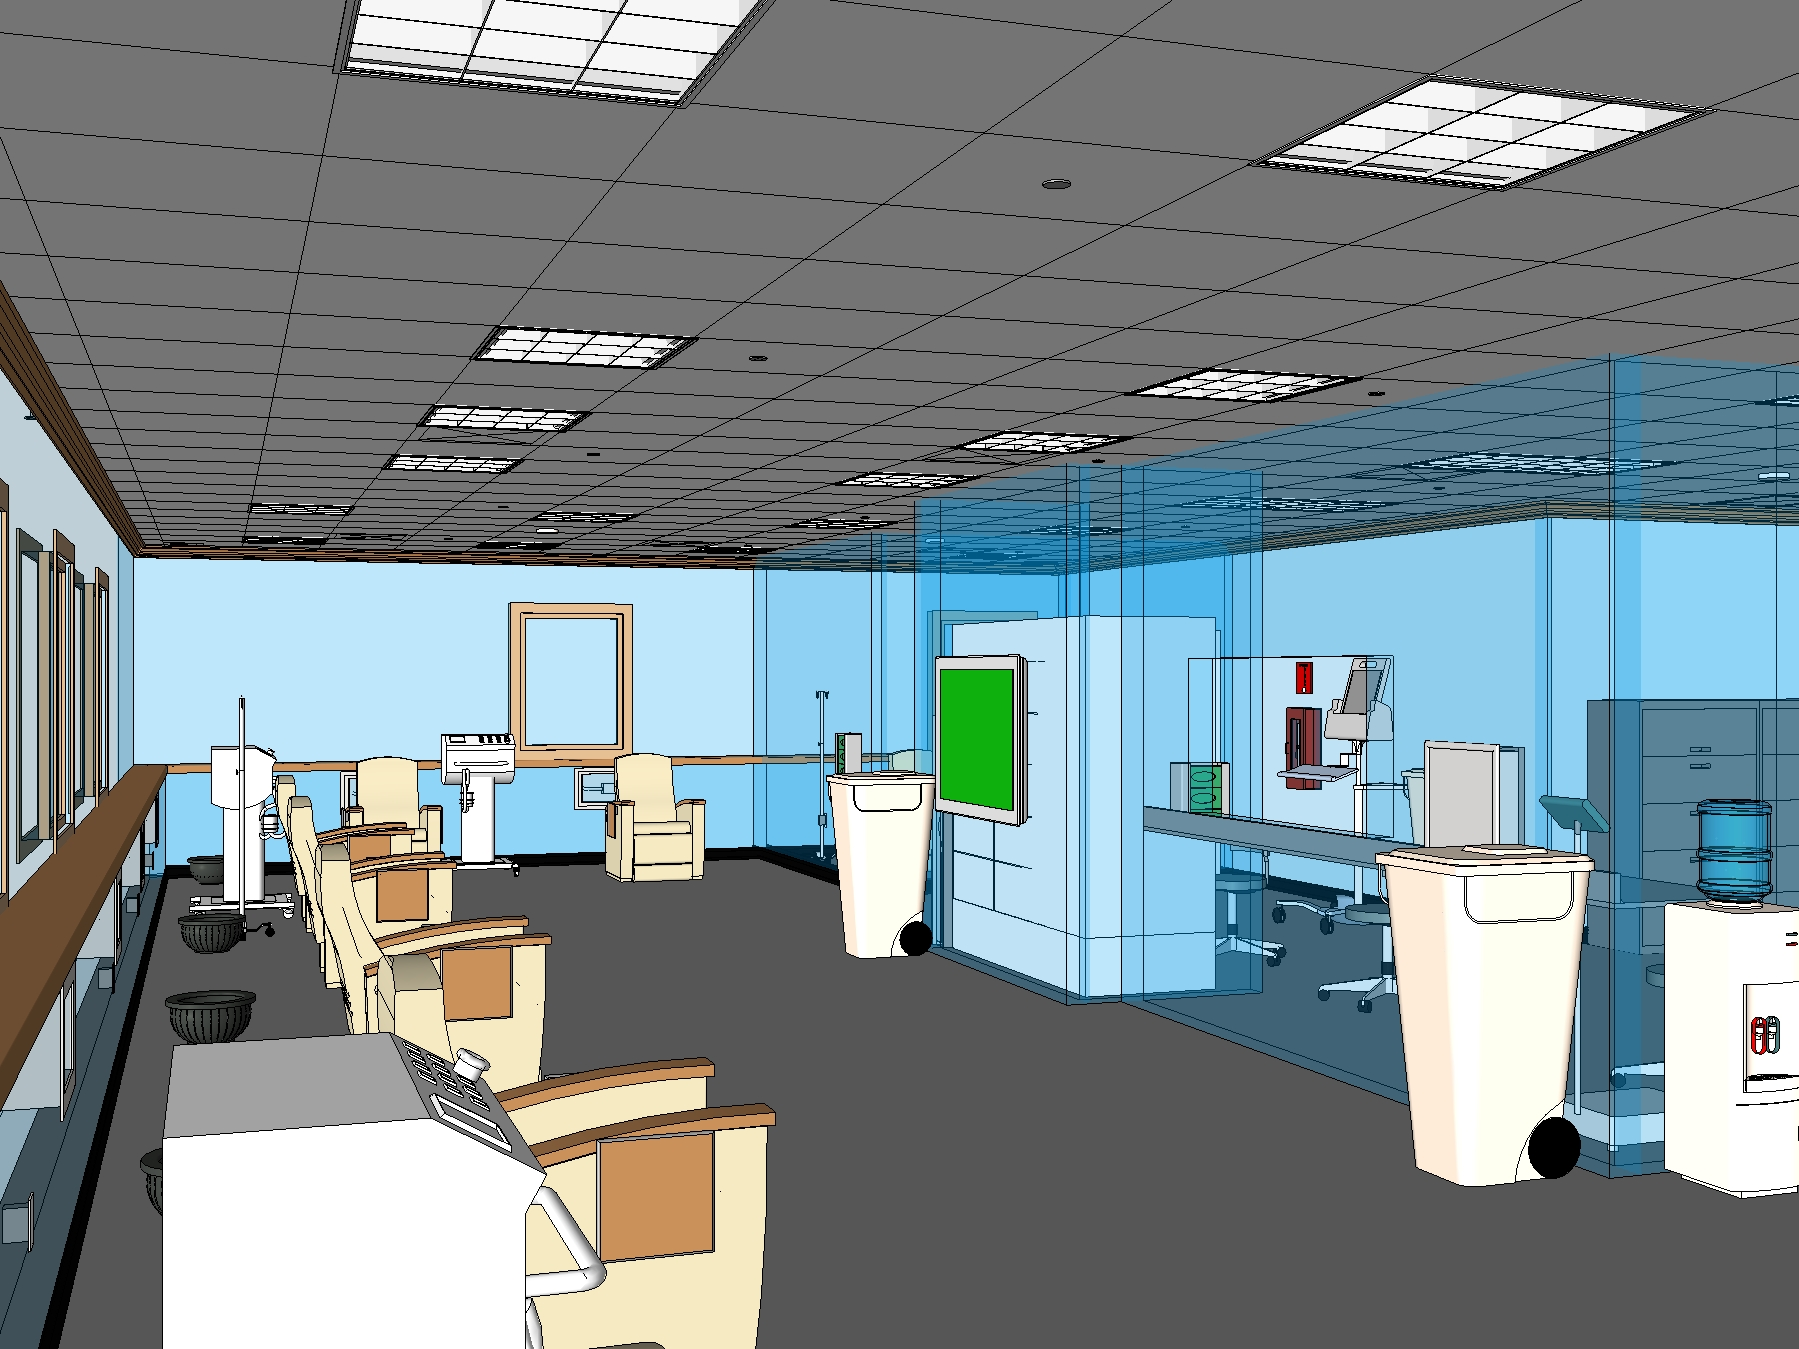 Medical_dialysis_center_reed_3d